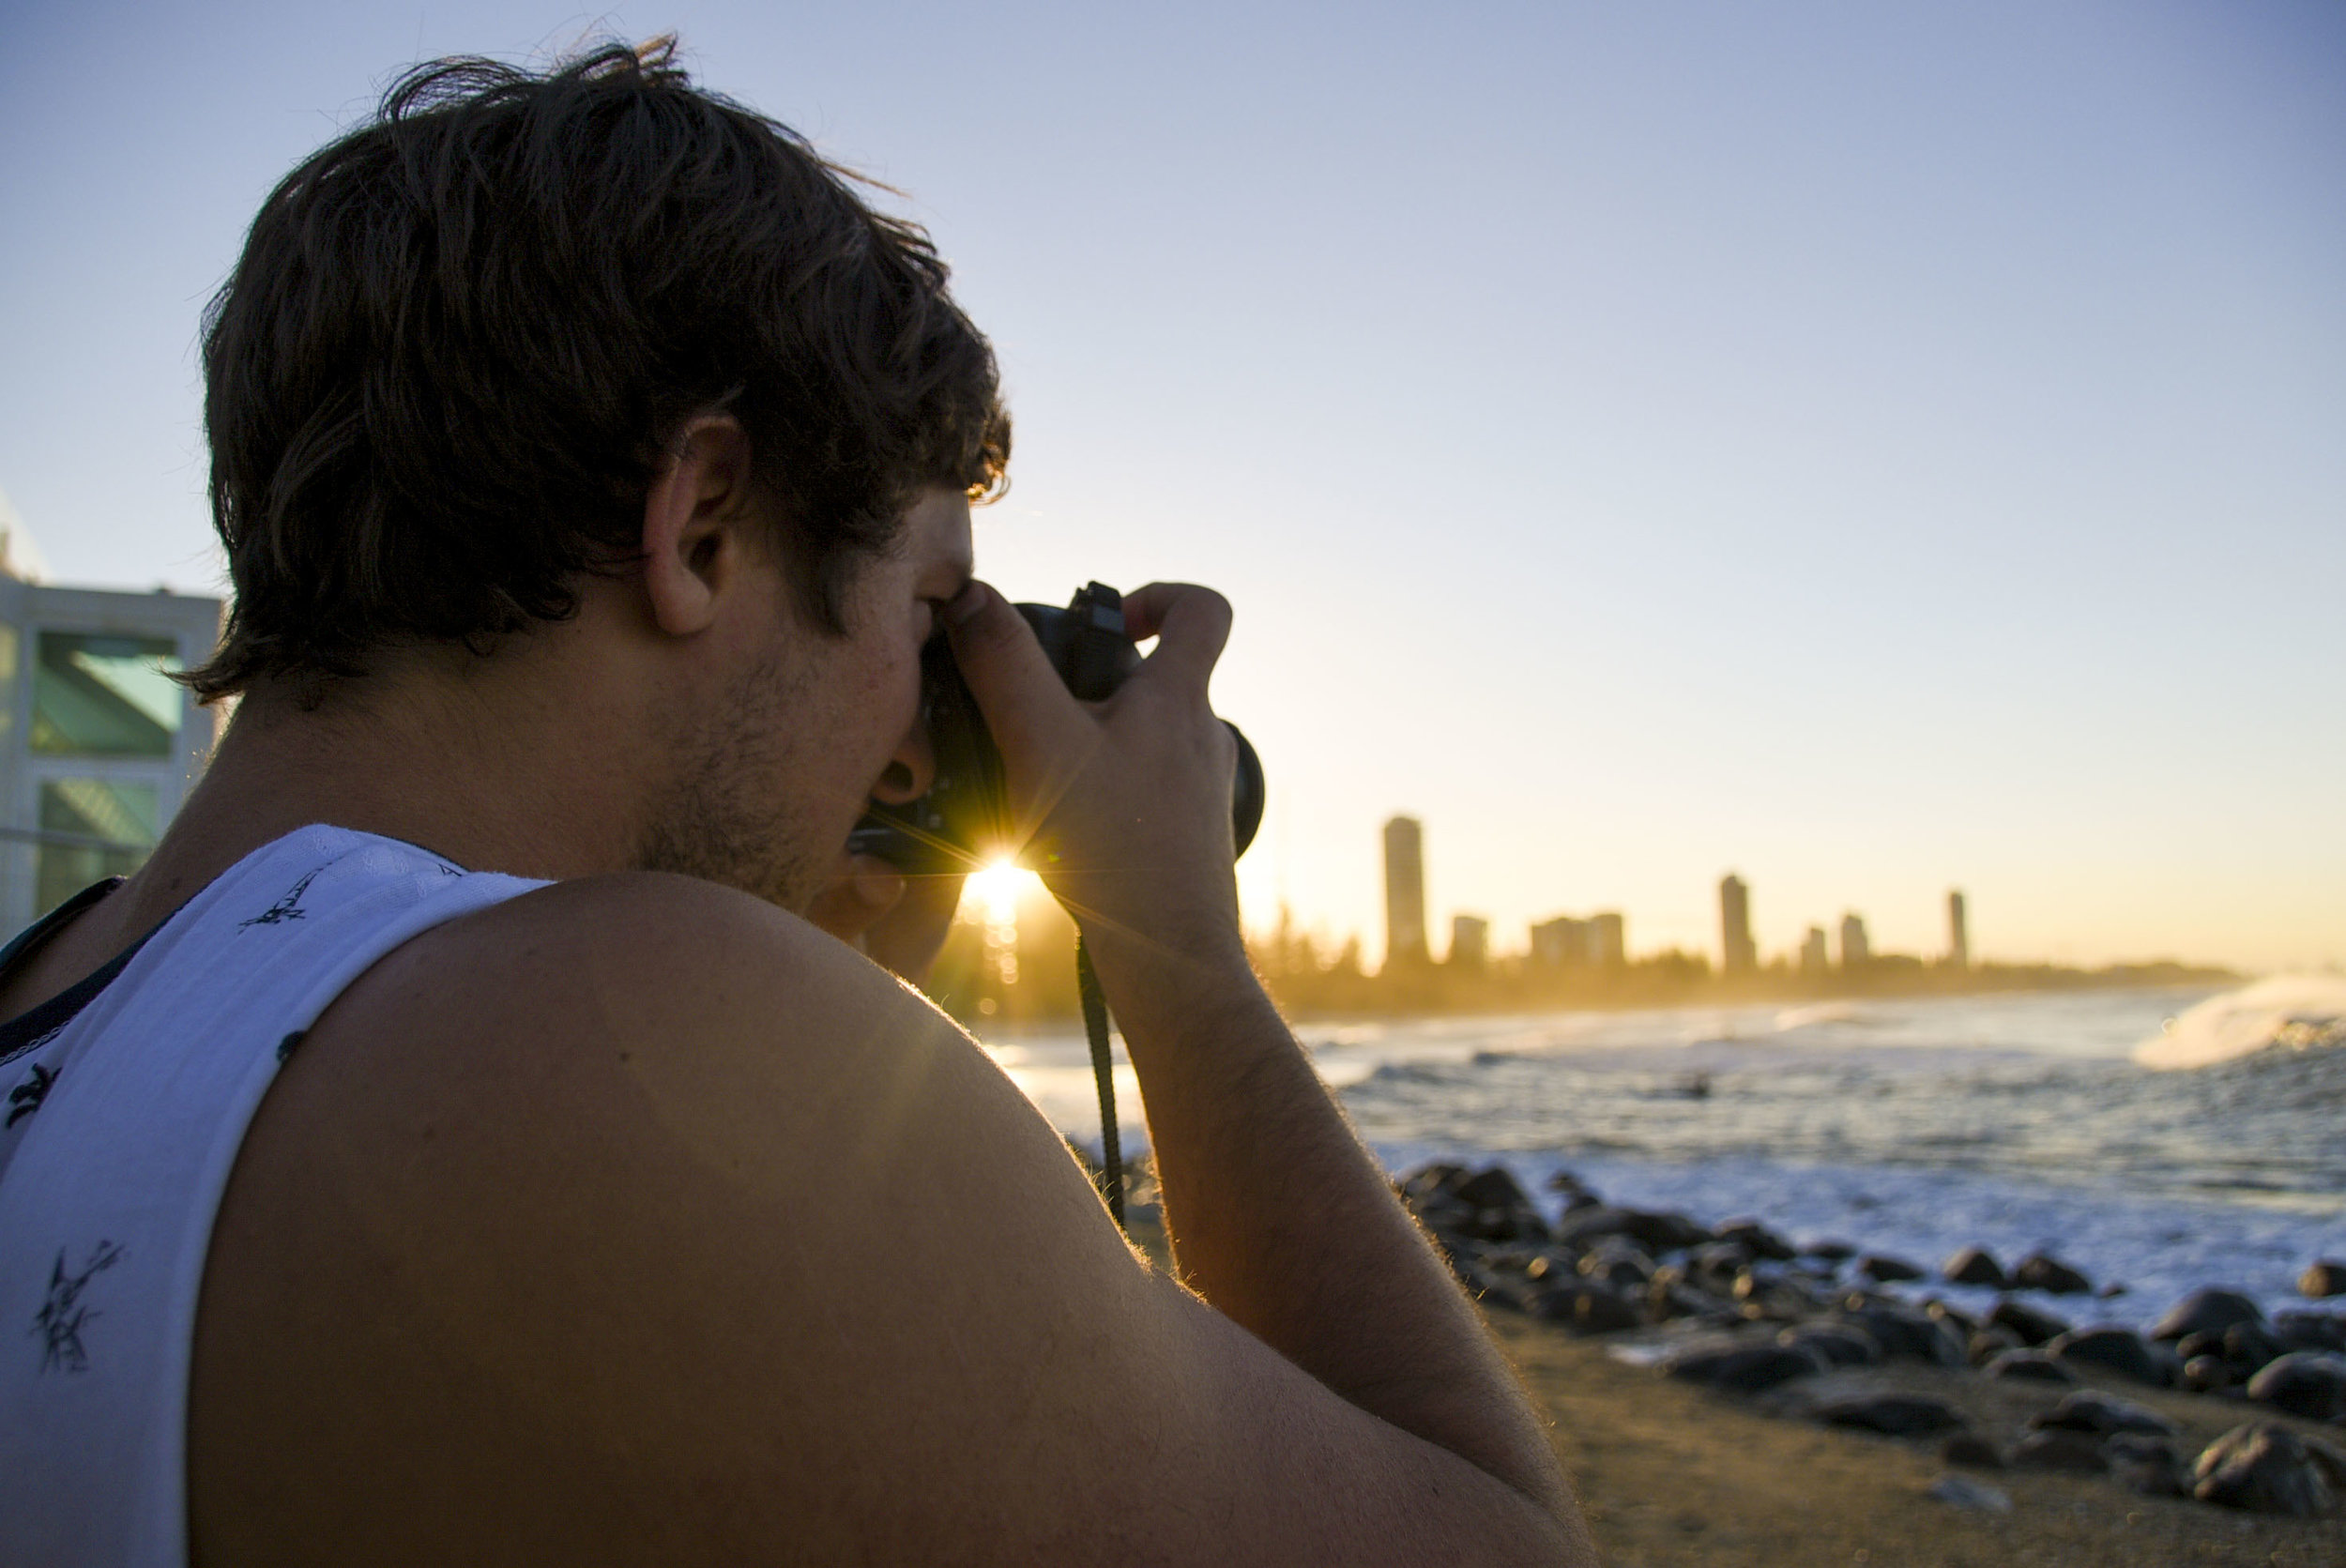 I AM DANIEL PASQUALE - My name is Daniel Pasquale and I am a Gold Coast based photographer.I have a love for the ocean, portraits and lifestyle photography from the land and sea.I have been chasing the ocean for 6 years and have never looked back. I would love for you to share the love I have in taking these photographs by displaying them in a place of yours that needs brightening up.Not all my photographs are up for sale on this site. If you have a particular image in mind please don't hesitate to message me with your requests and I will do my best to bring your visions to a canvas in your space.Thank you and enjoy :)